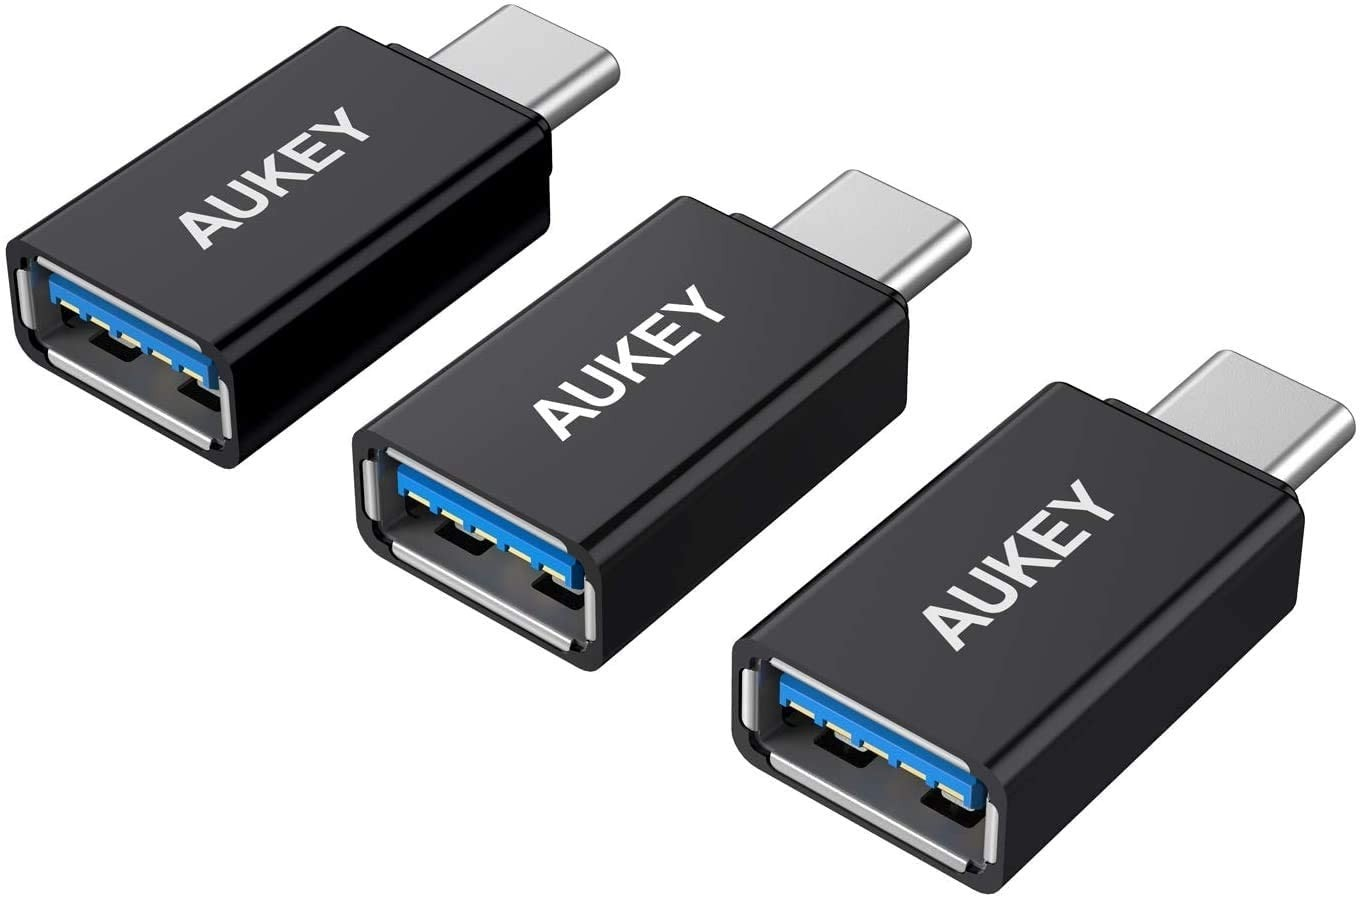 Aukey USB 3.0 A to C Adapter, 3 Pack - Black, B01AUKU1OO